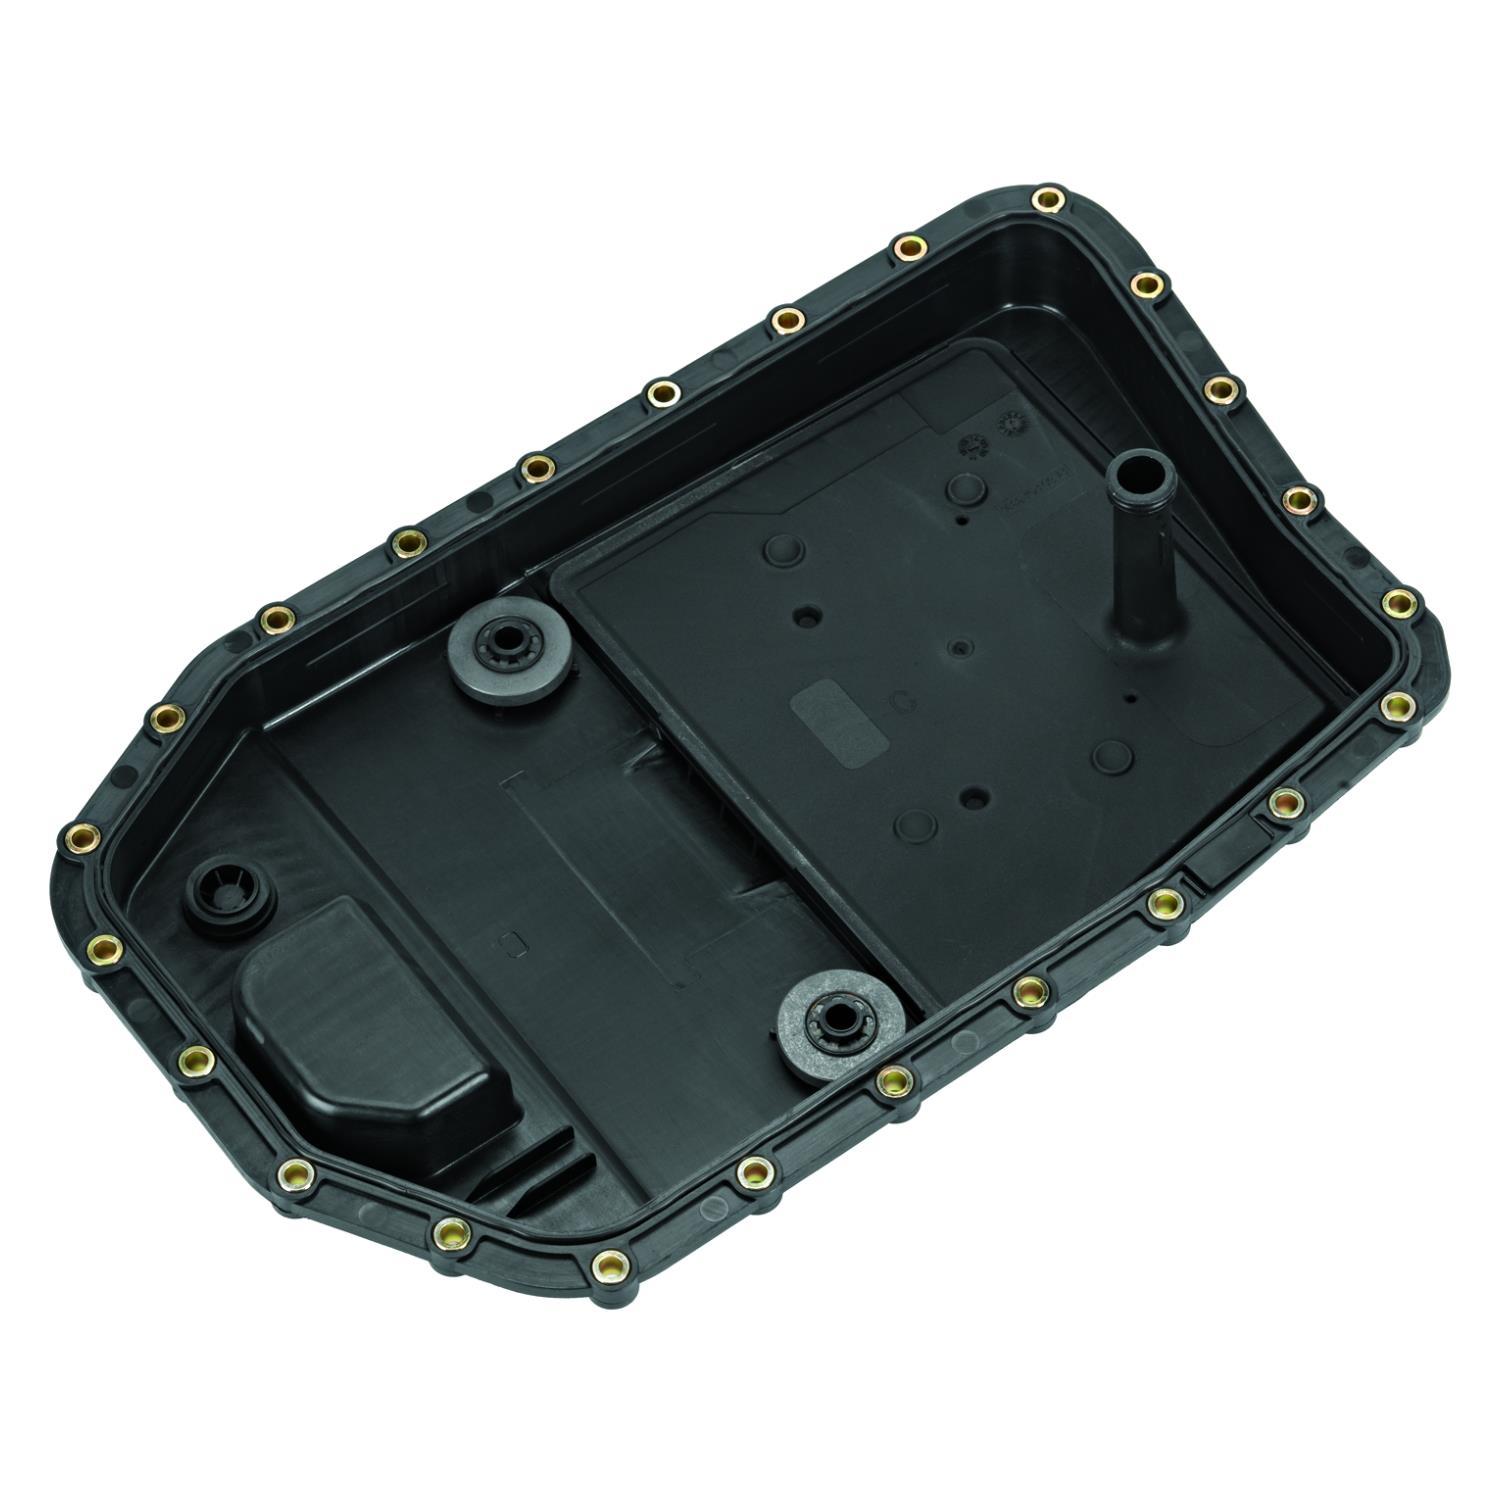 ATP Automotive B-408 Oil Pan with Integrated Filter